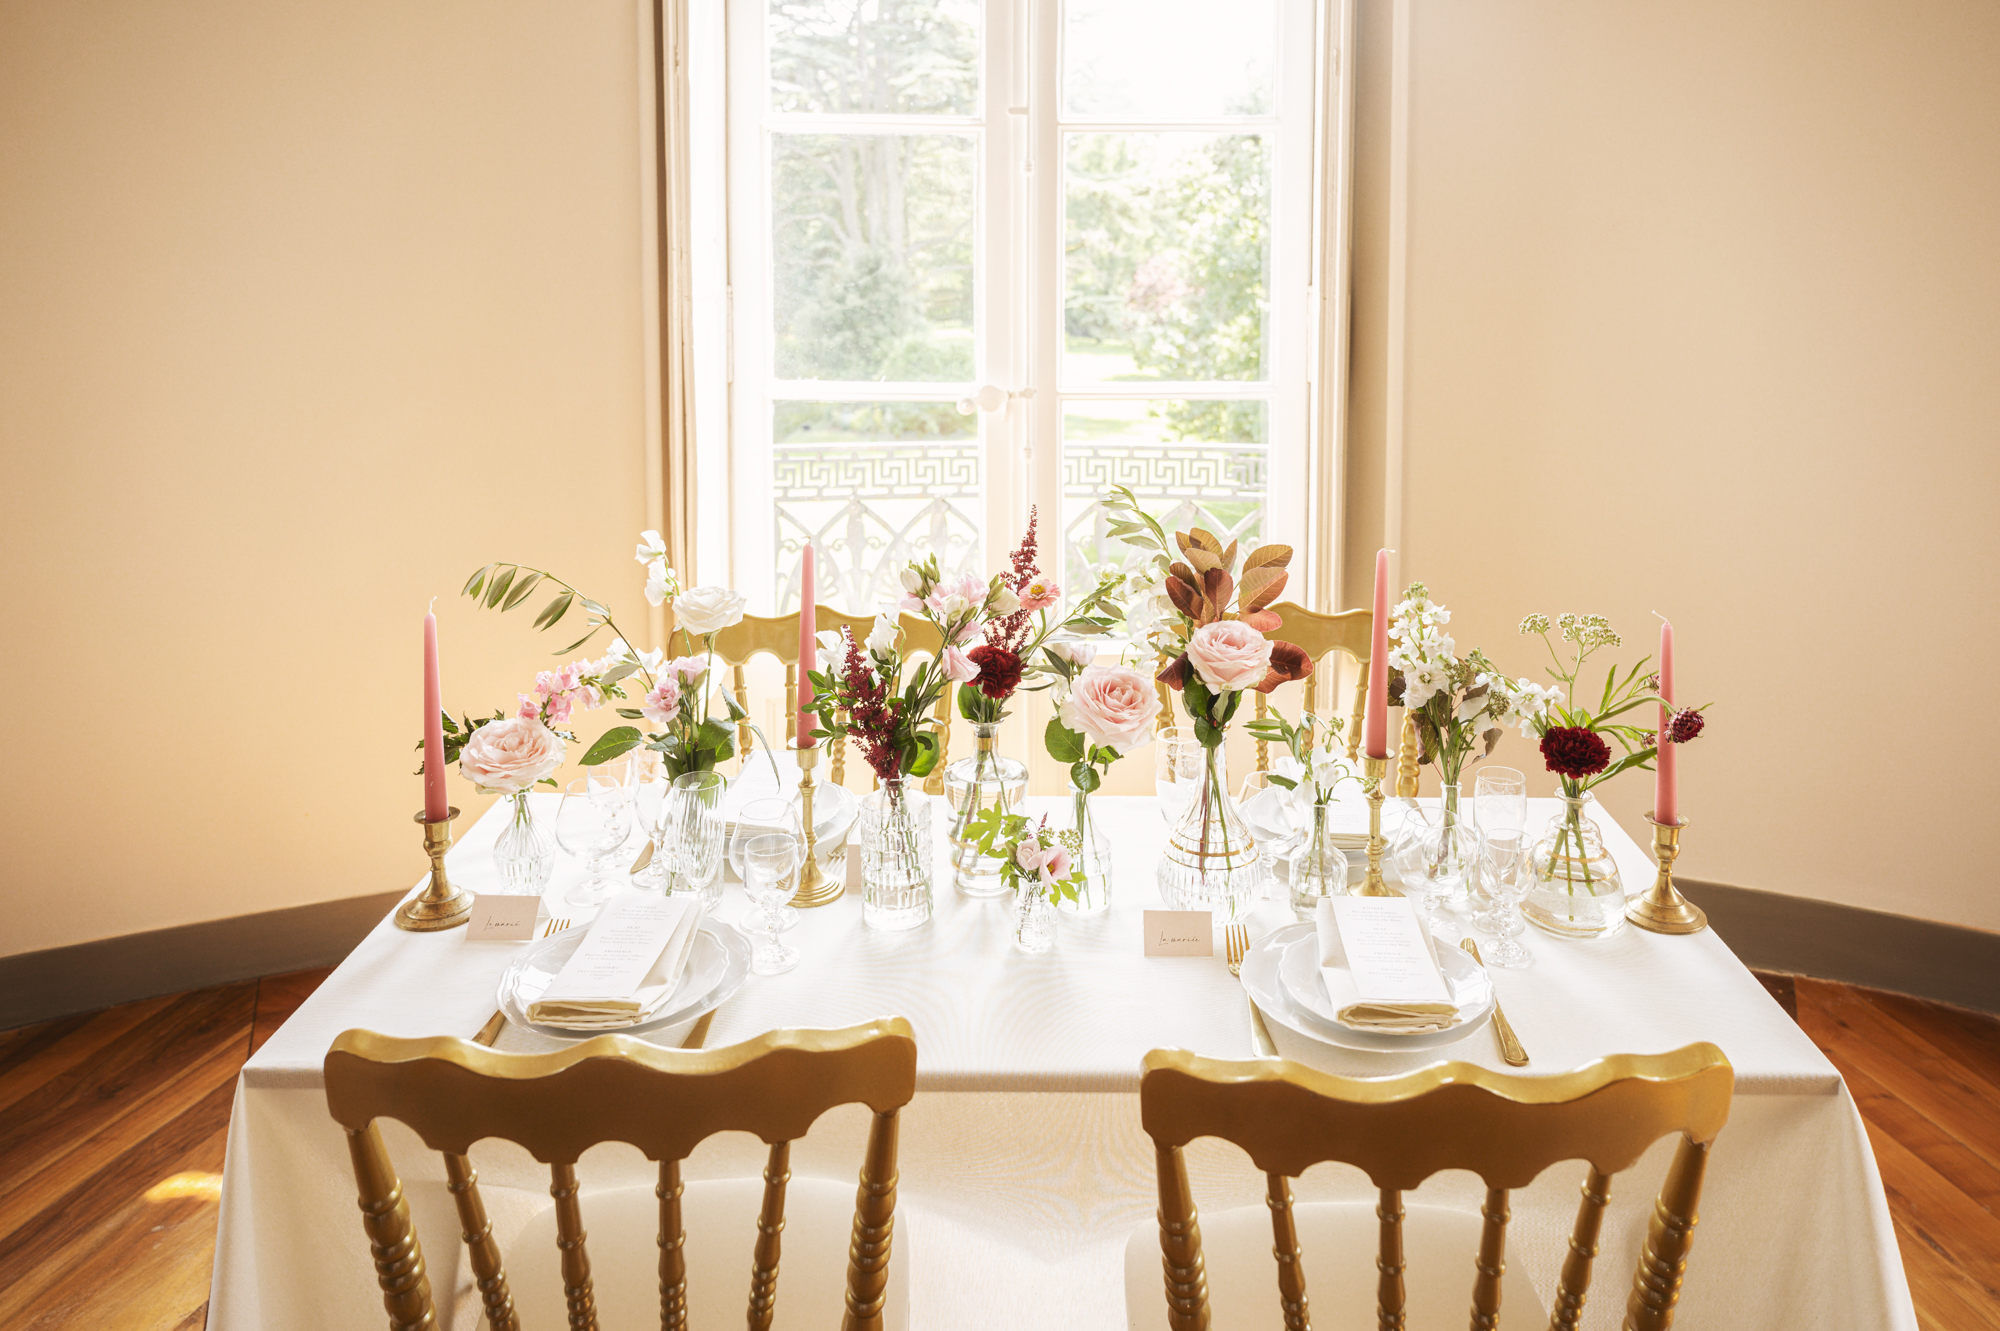 French wedding decorations to hire